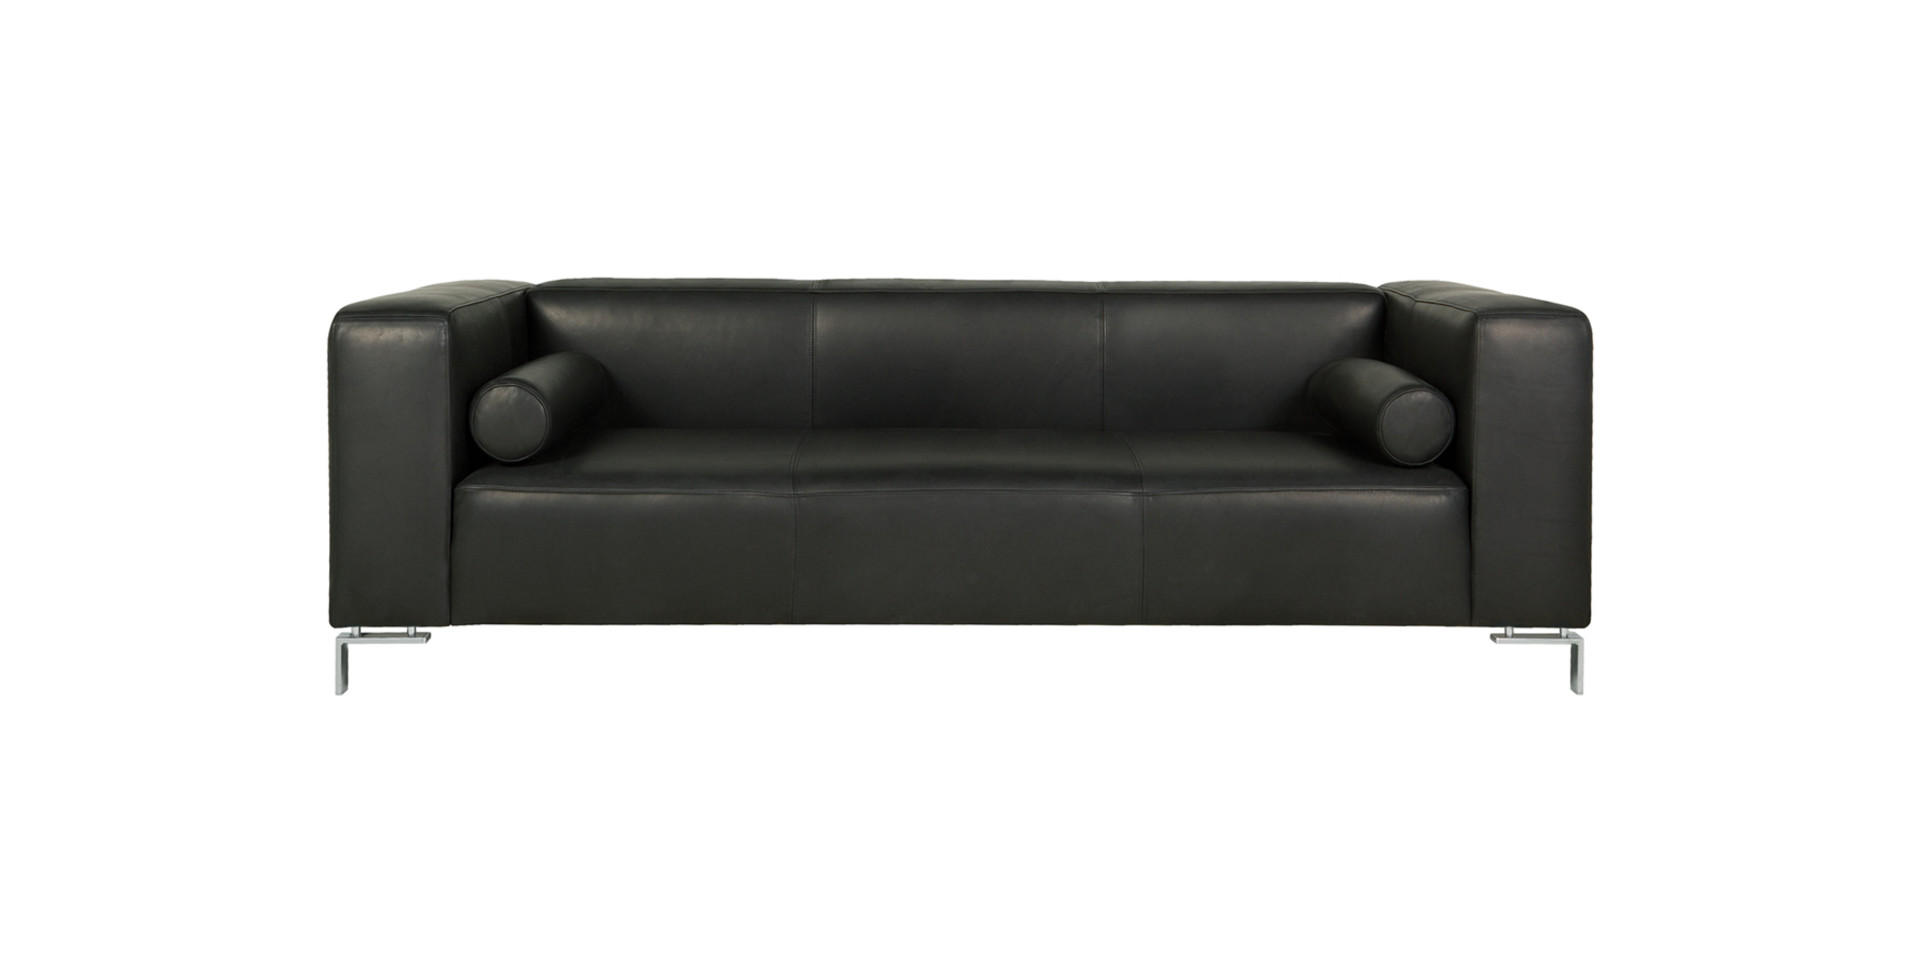 sits-bellagio-canape-3seater_aniline_black_1